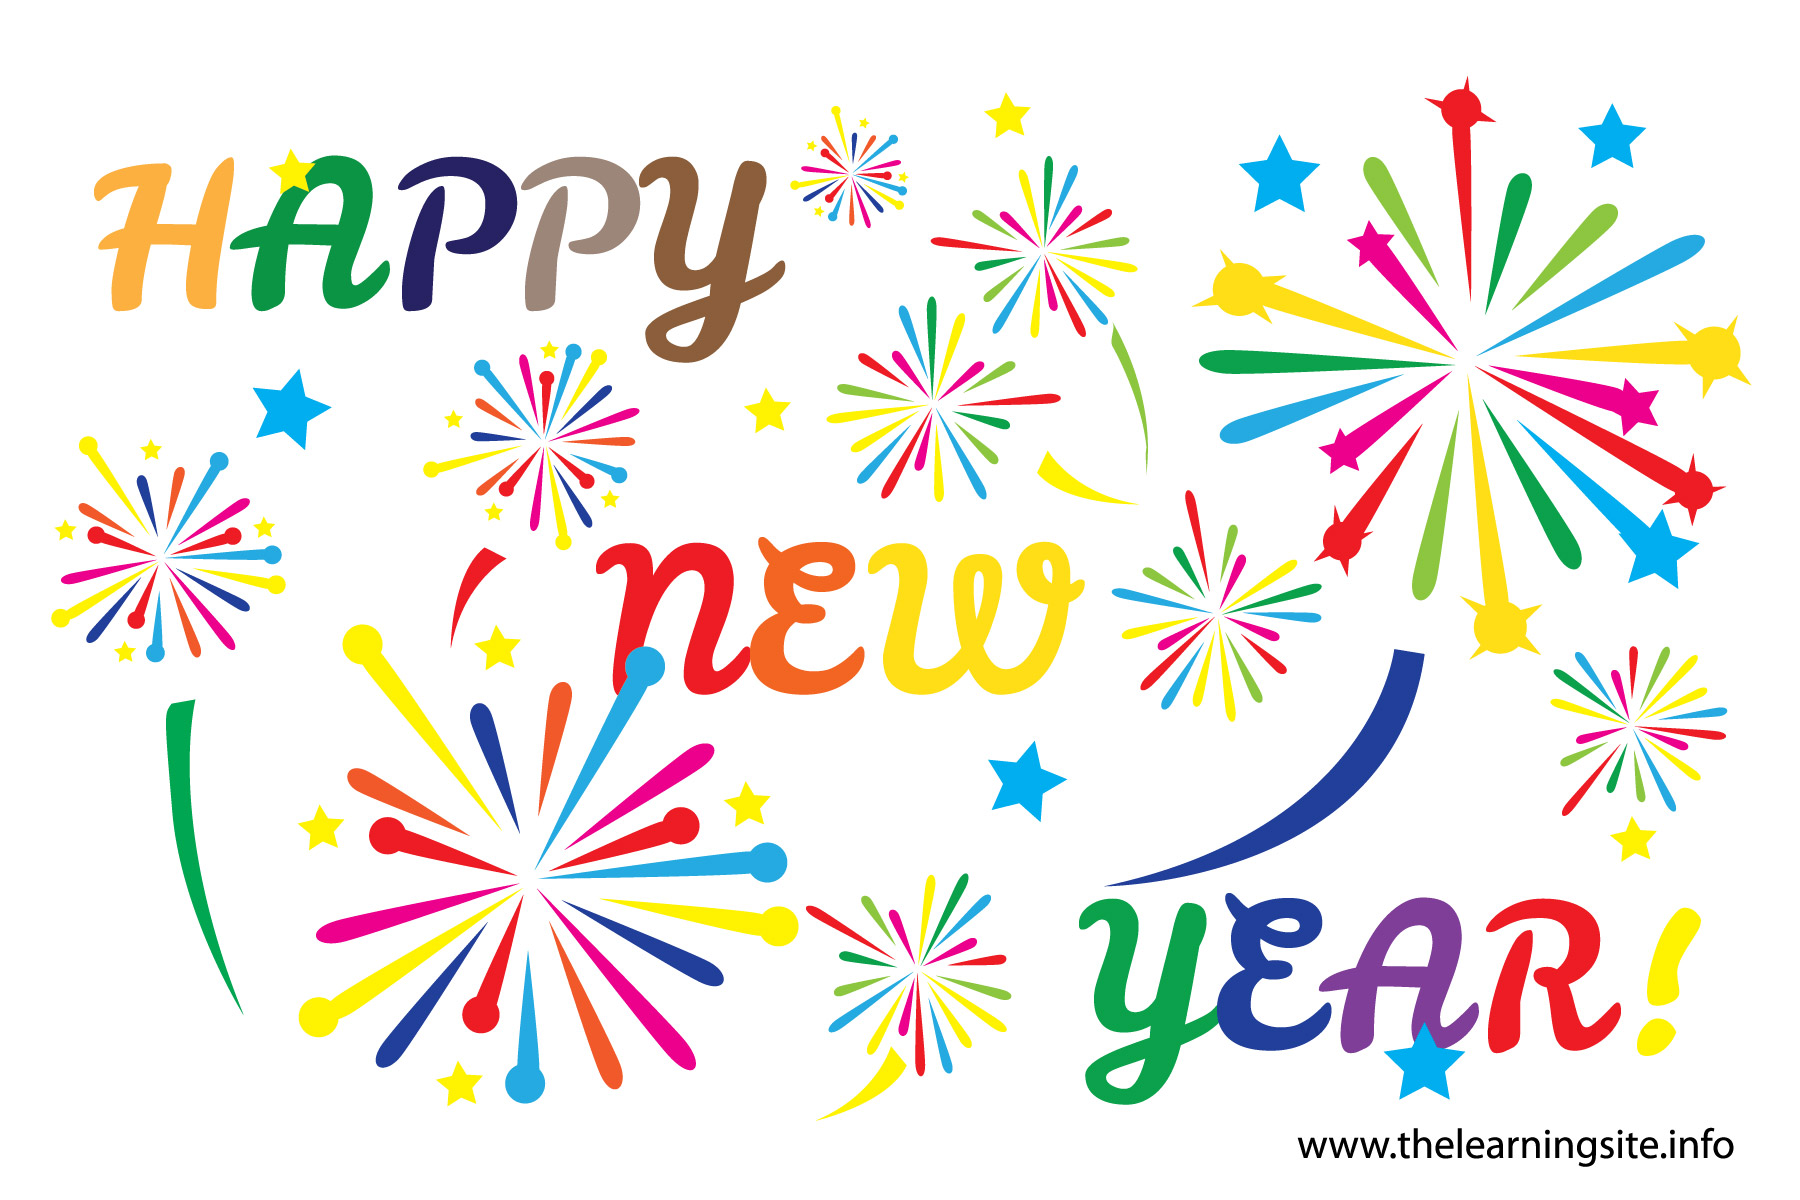 New Year clipart whistle Year Cliparting free Happy 77